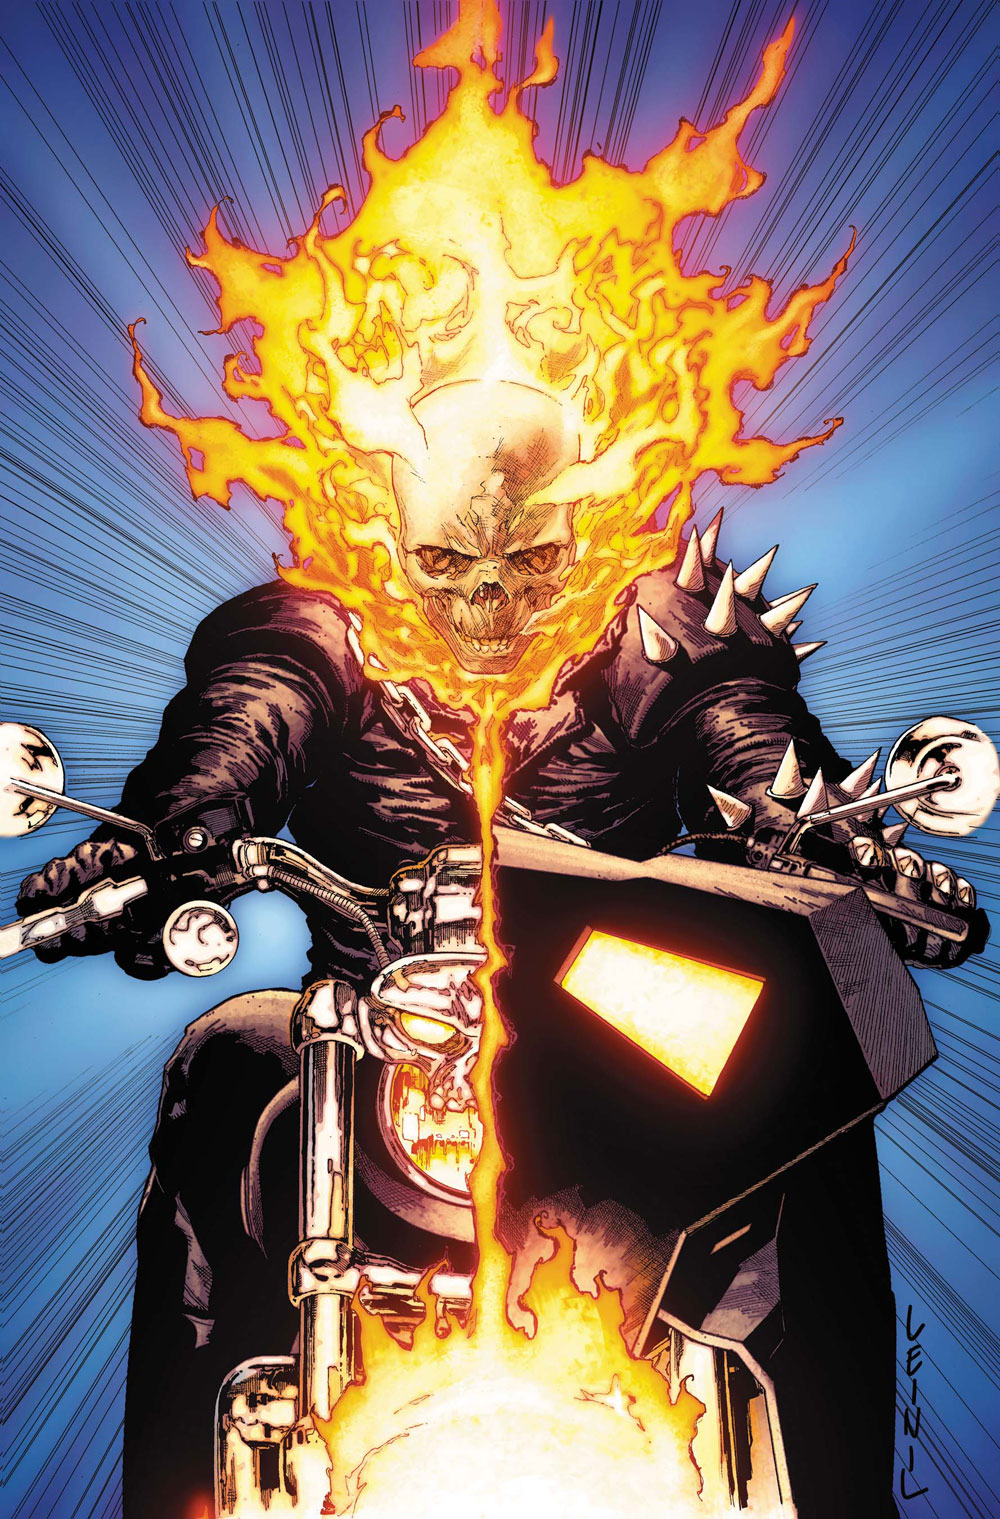 Leinil-Yu-comic-art-gallery-ghost-rider